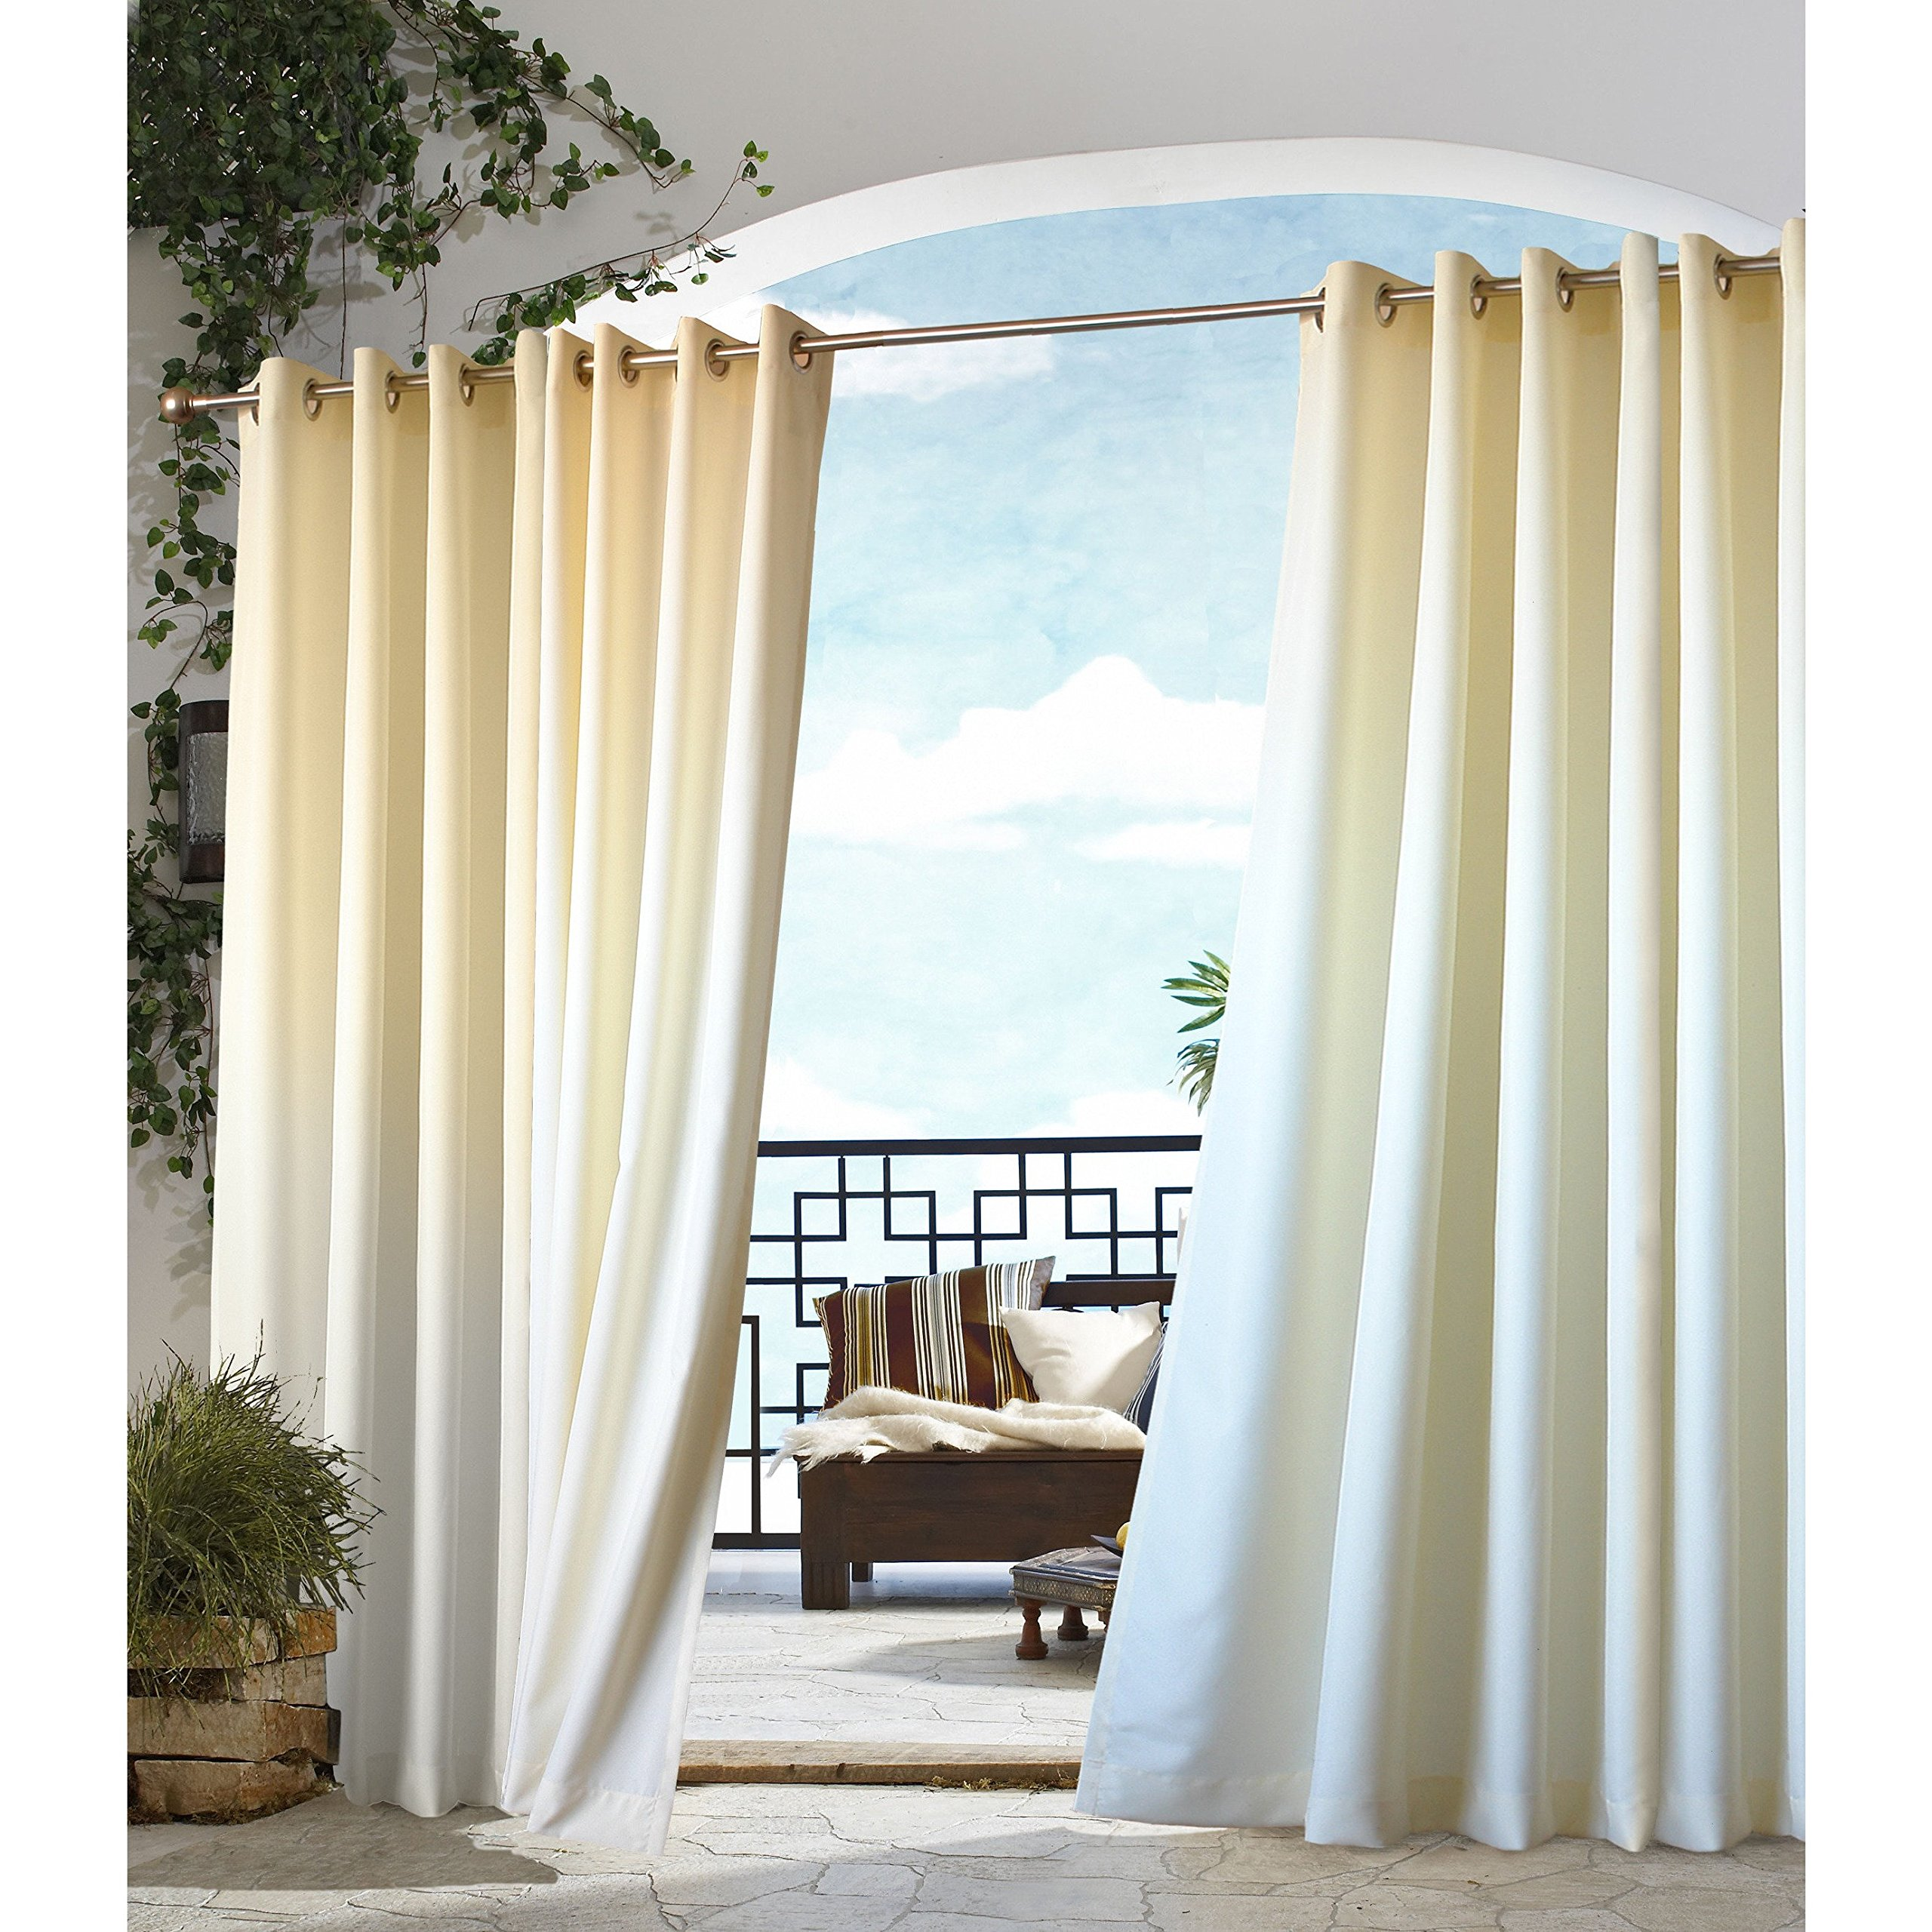 1 Piece 96 Inch Outdoor Natural Gazebo Curtain, Light Yellow Color Outside Window Treatment Single, Indoor Patio Porch Deck Entrance Door Grommet Ring Top Doorway Pergola Drapes, Cabana Polyester